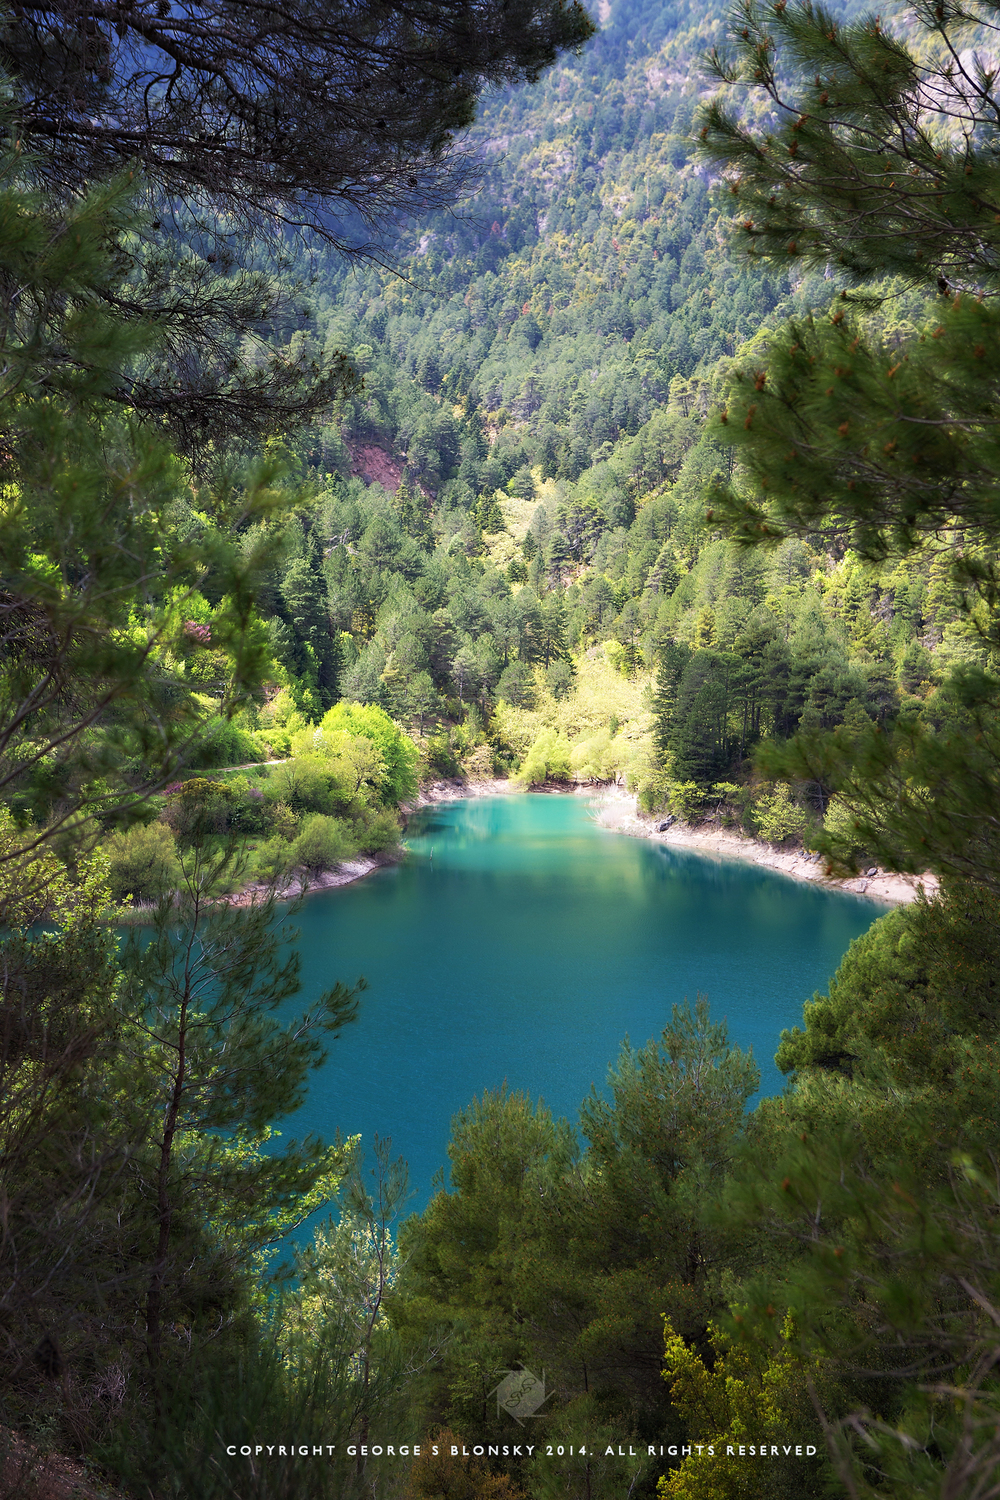 Lake Tsivlos photographed during our 3 day off-road driving & landscape photography workshop with JP Forum